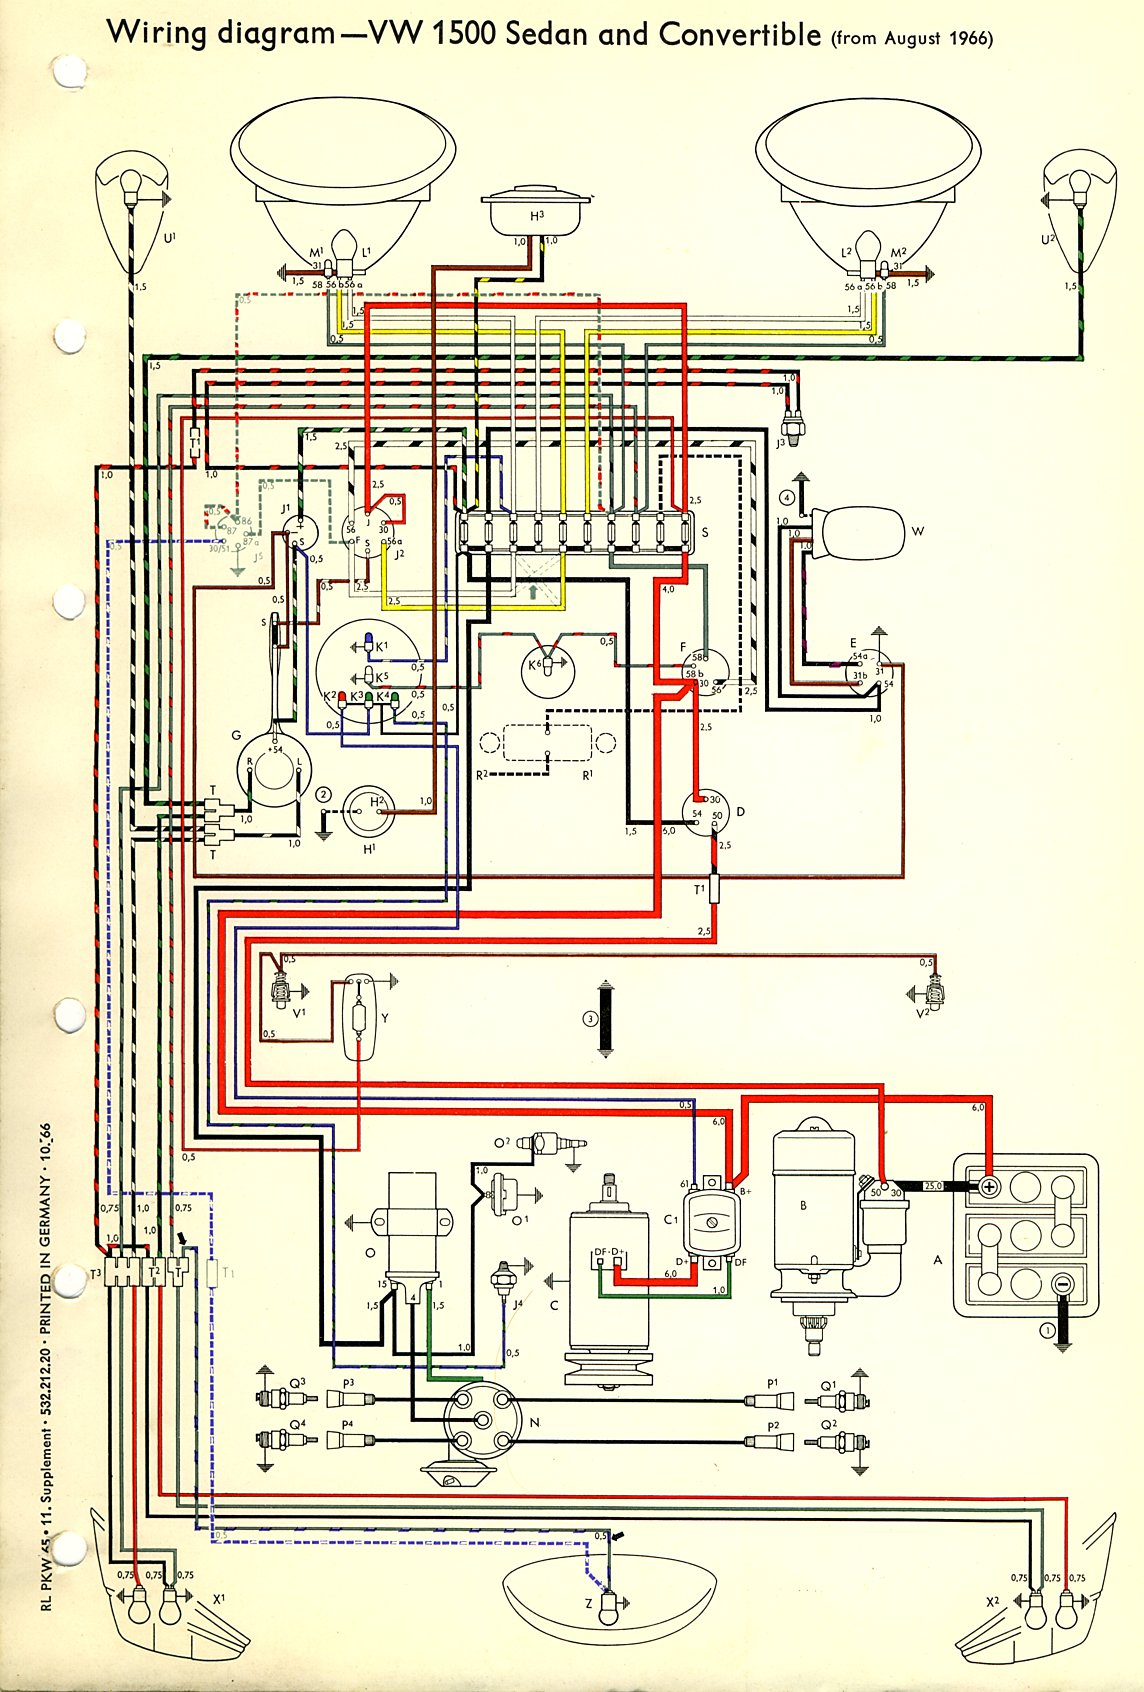 thesamba.com :: type 1 wiring diagrams 74 bug wiring schematics 74 chevy wiring diagram